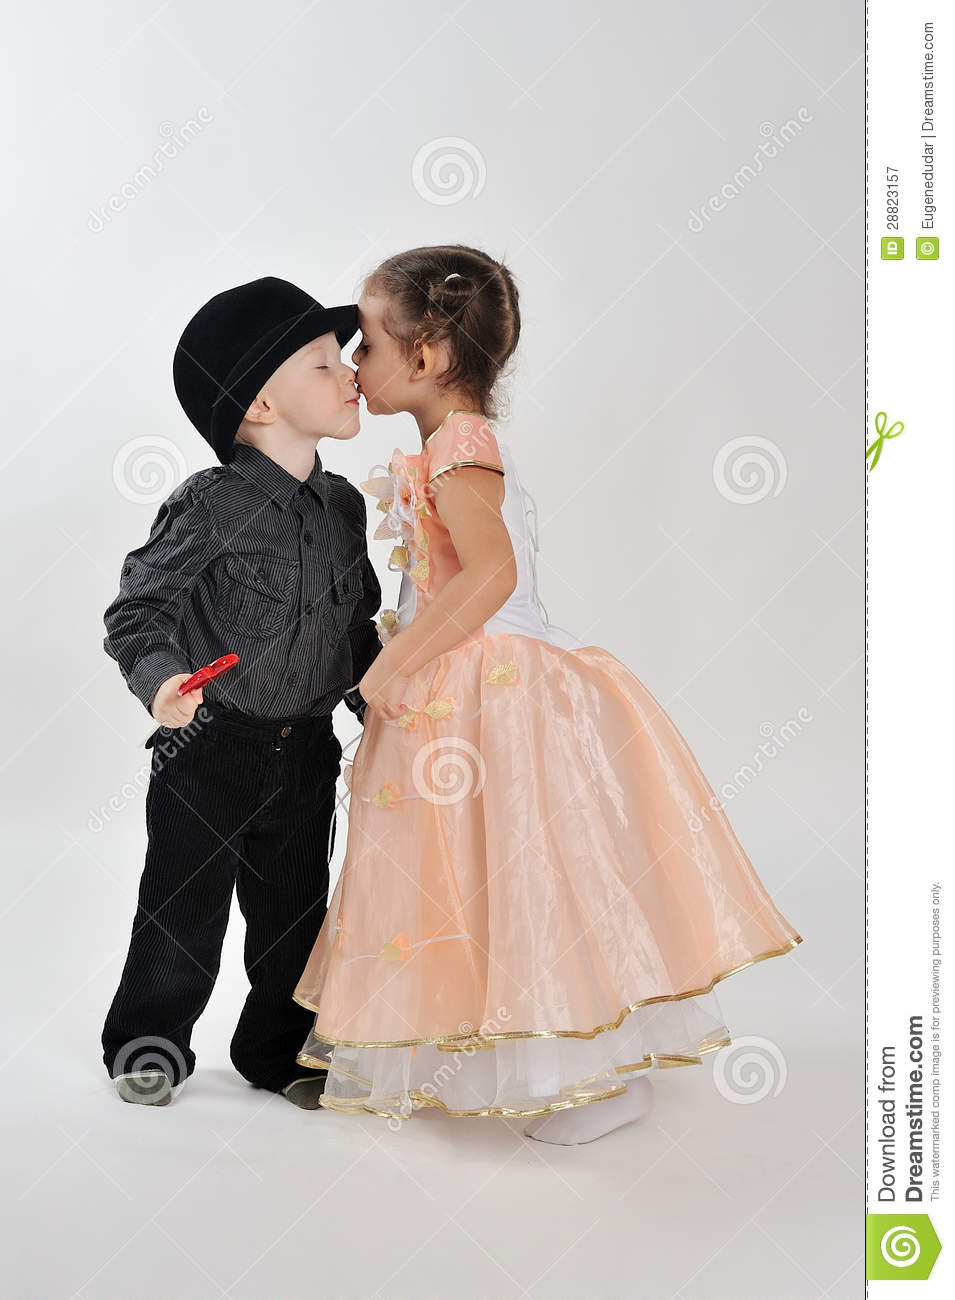 First Kiss Stock Image Image Of People, Little, Cute - 28823157-2425